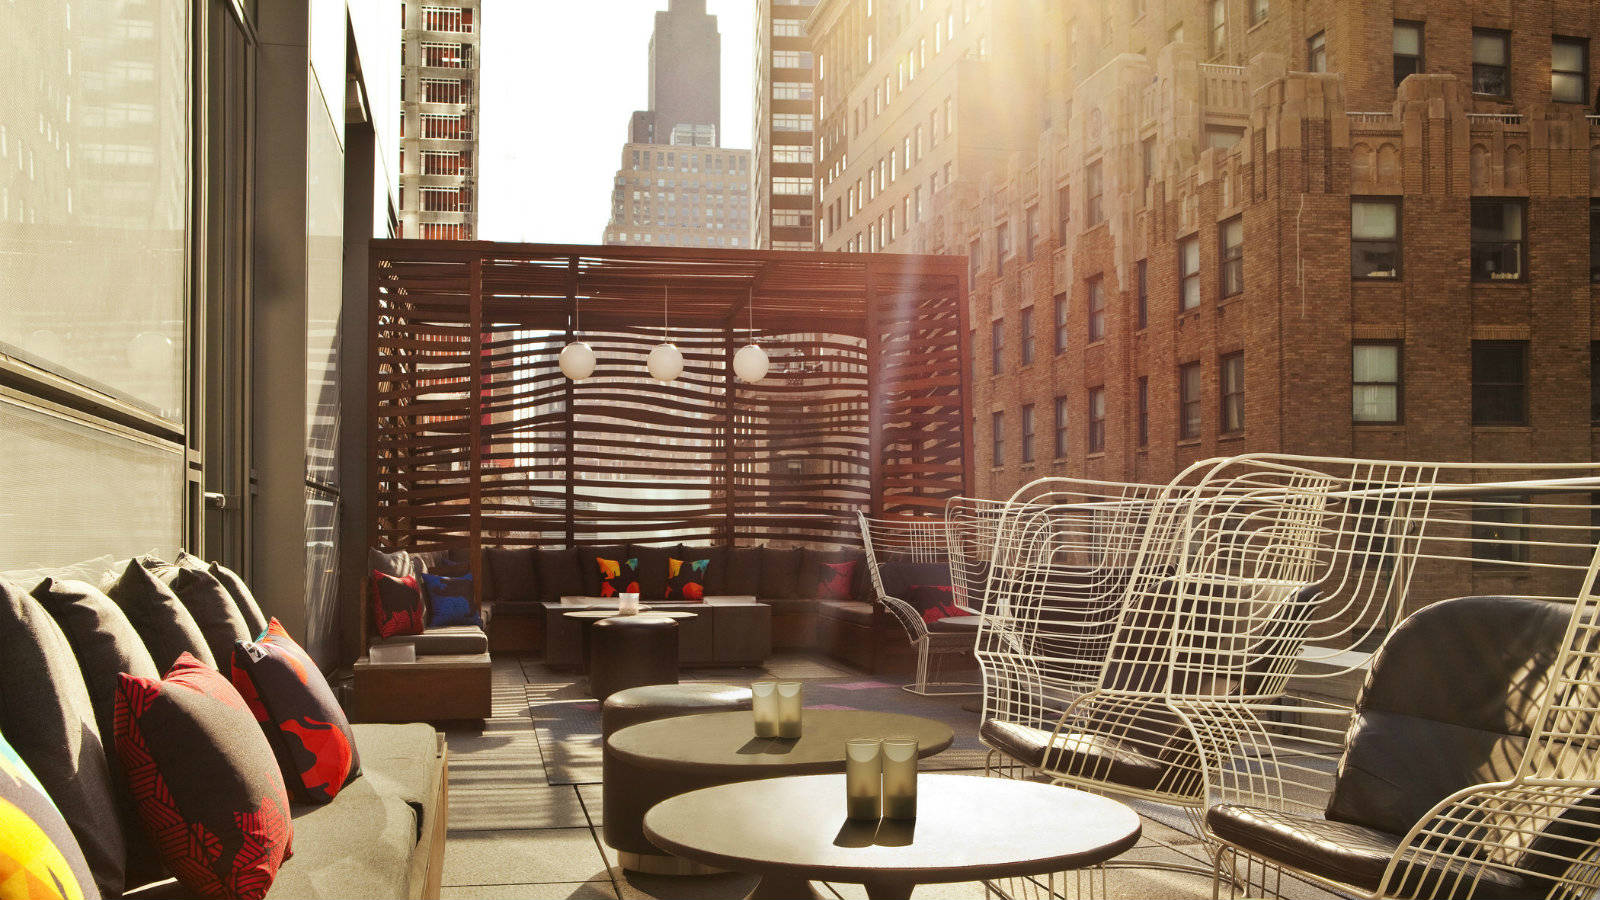 Superb W New York   Downtown   Financial District Bar Wraparound Terrace